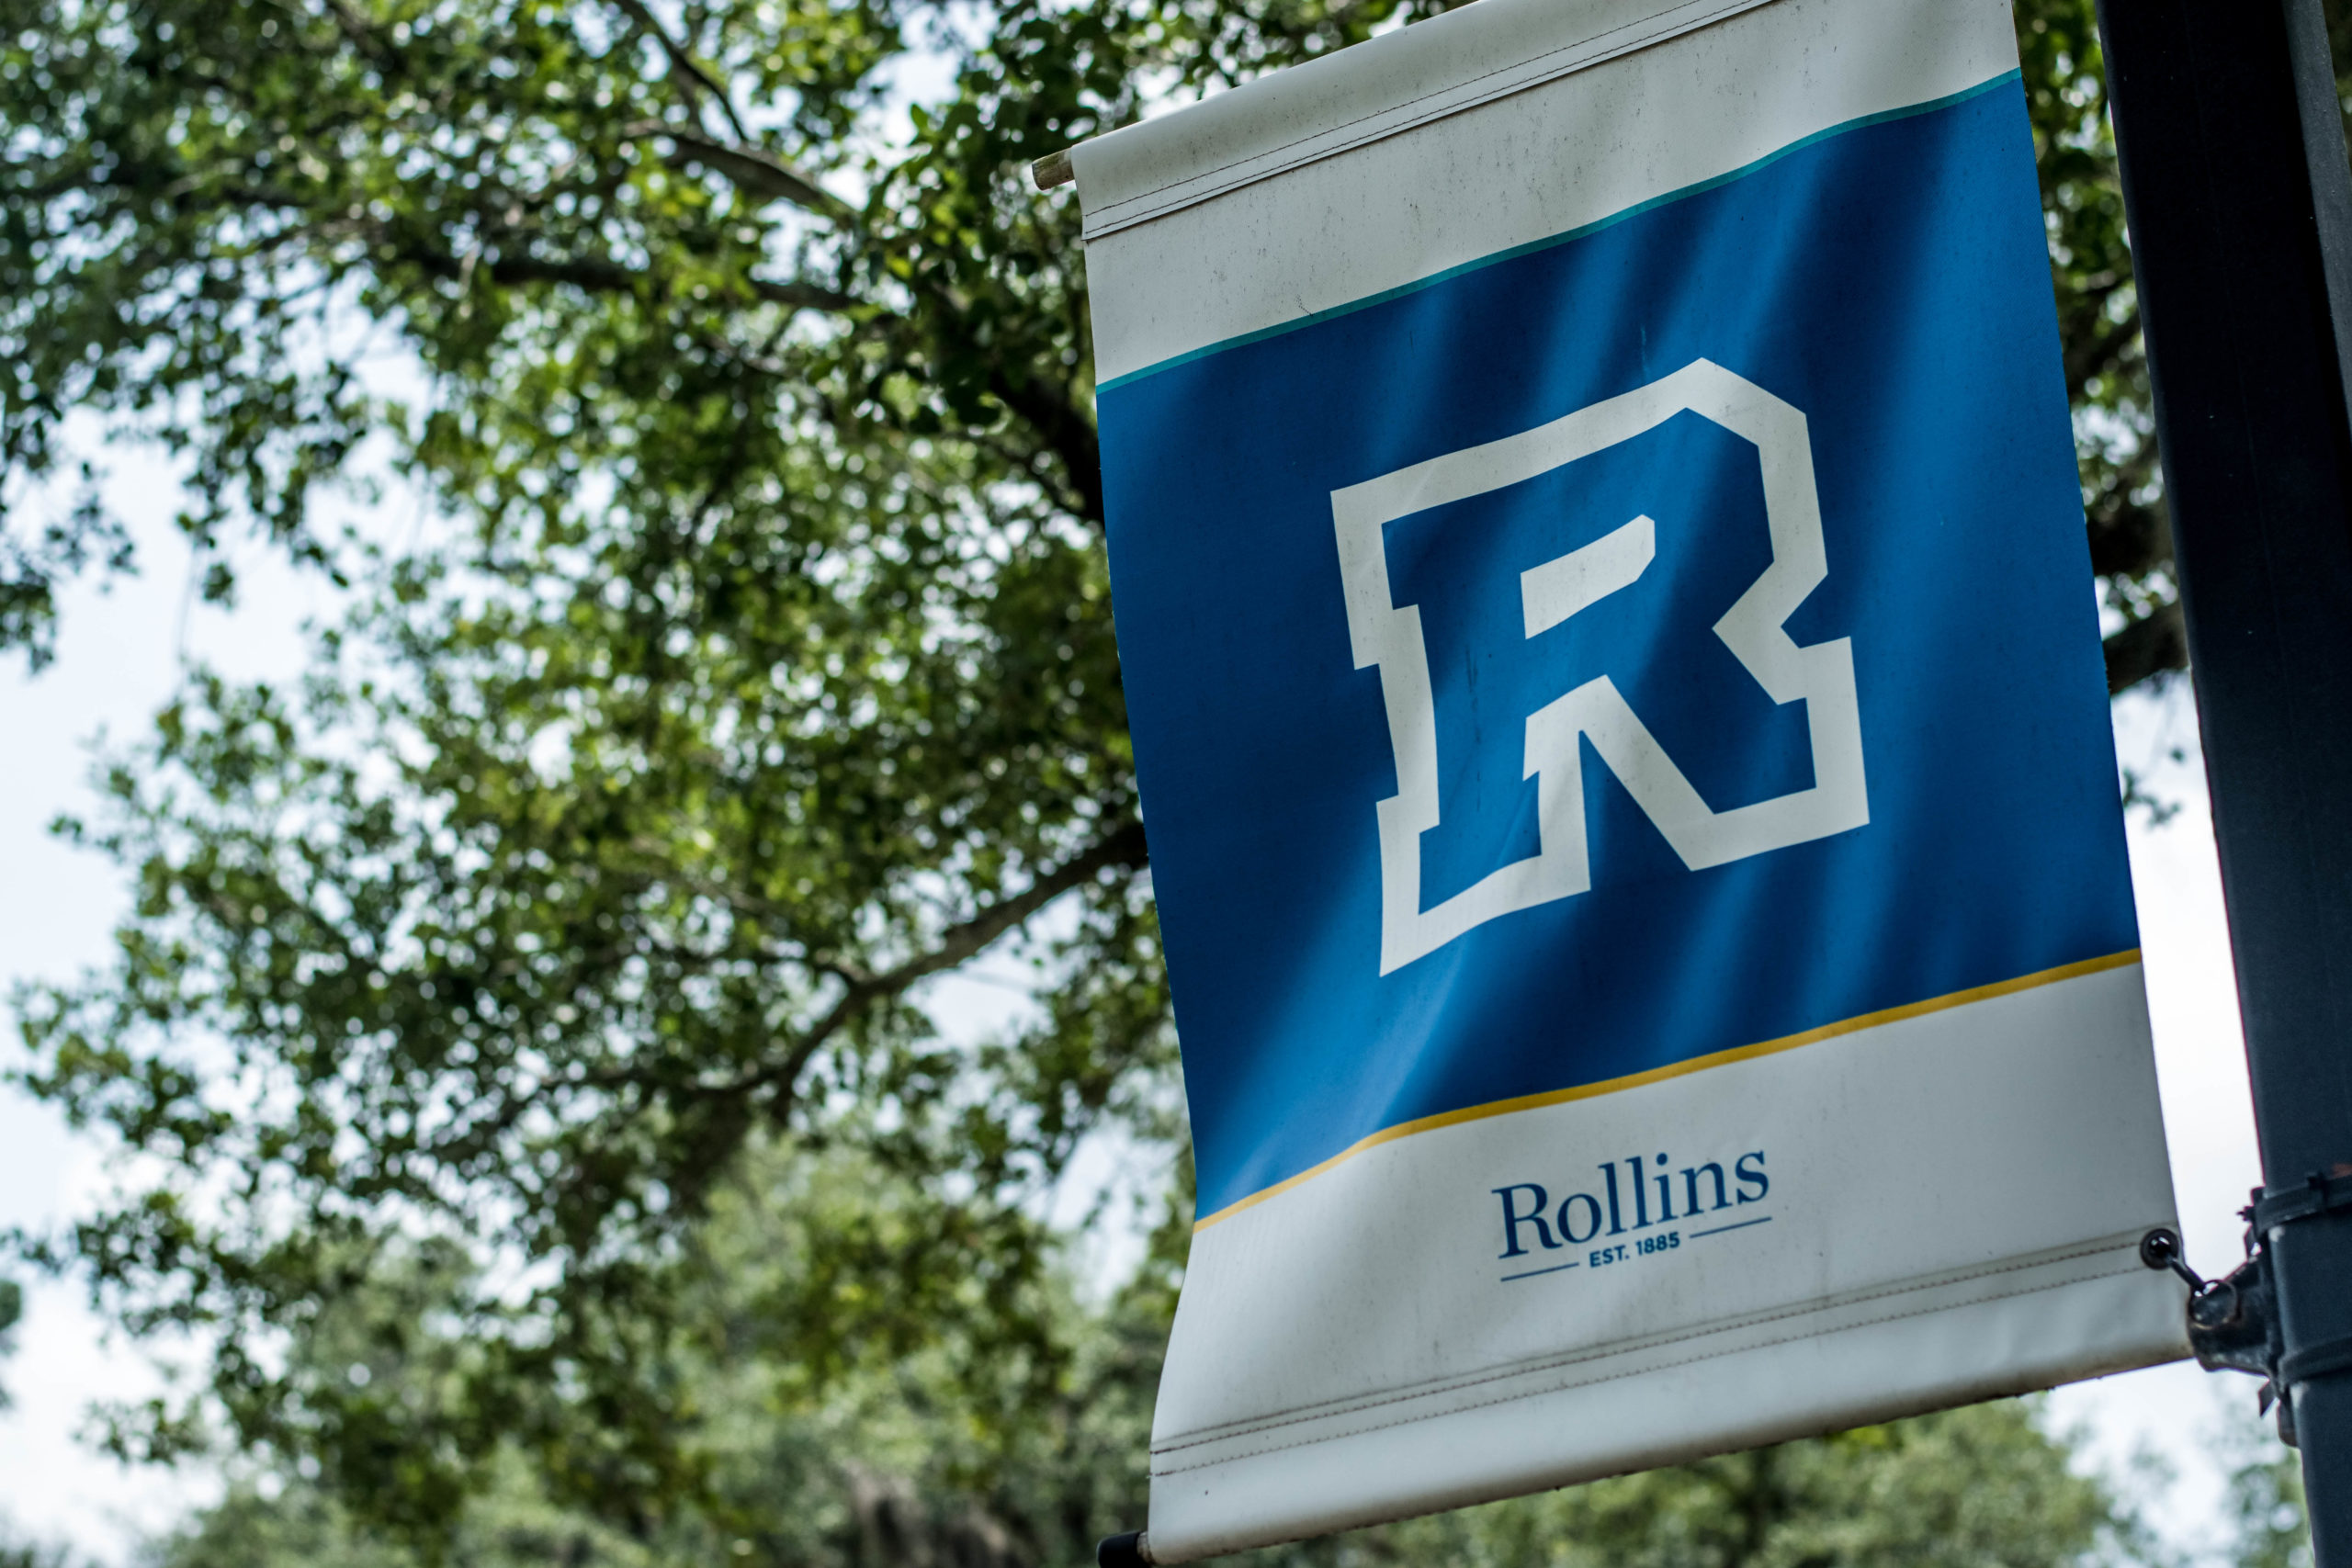 Rollins College flag.